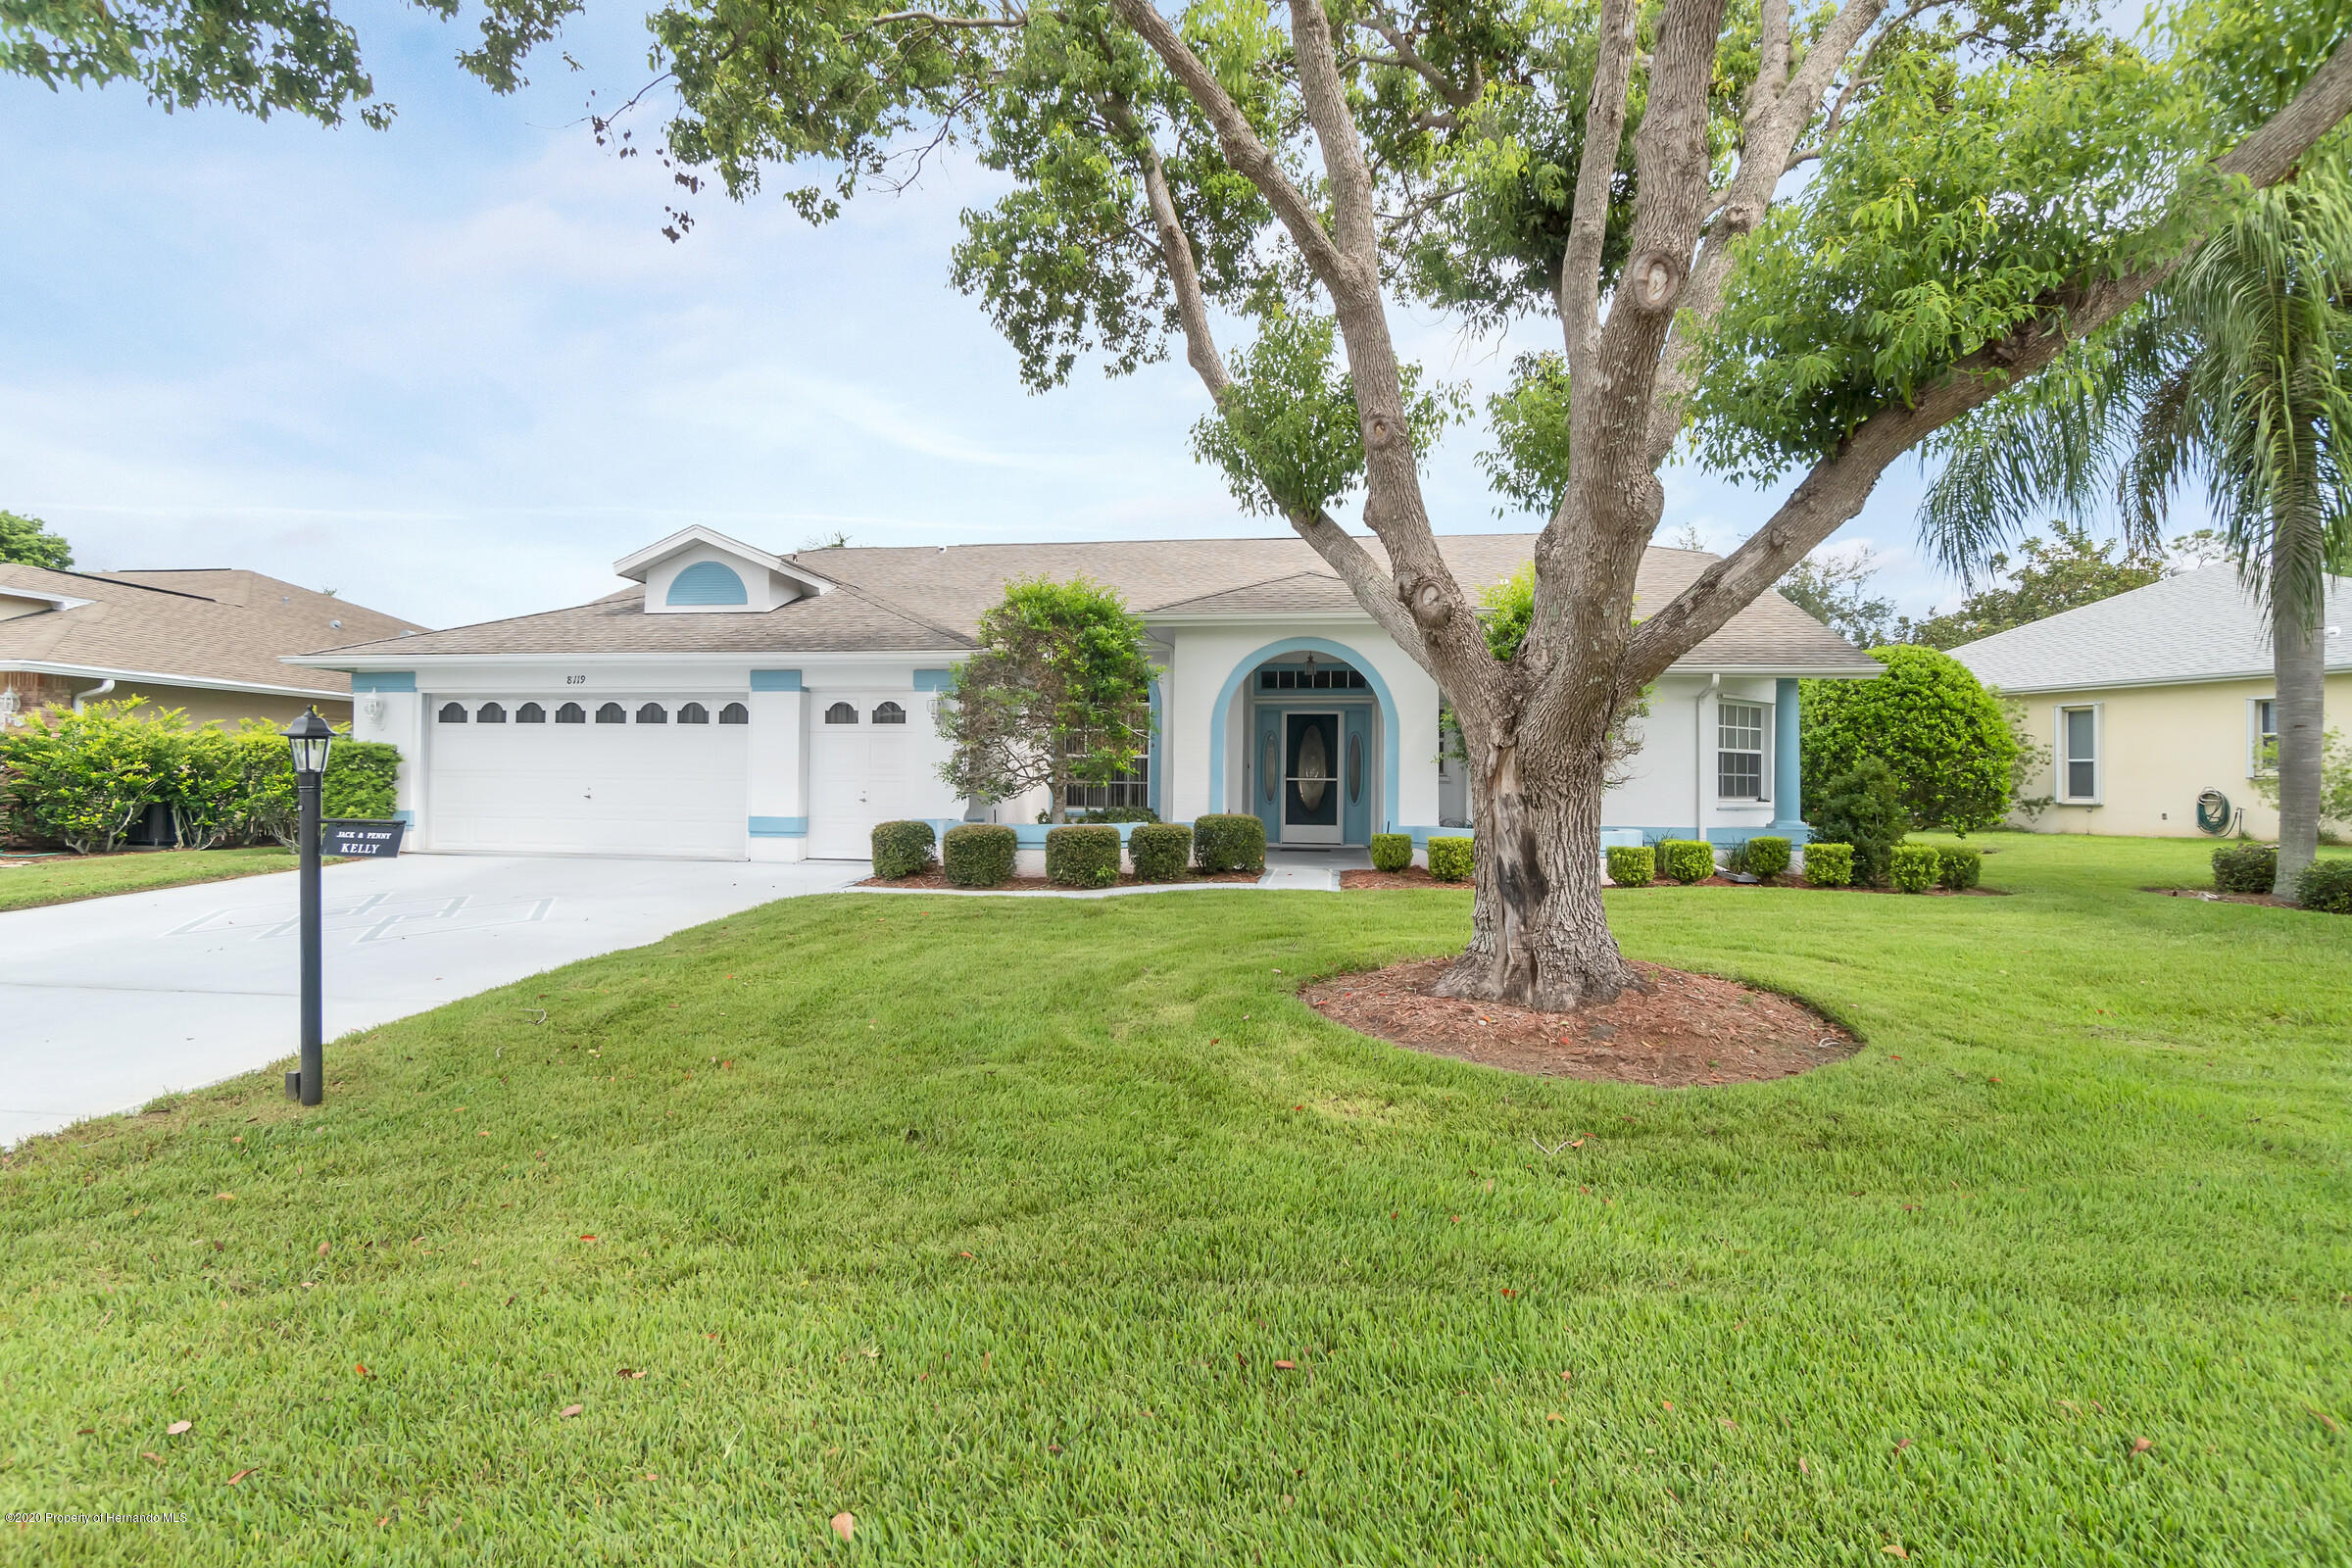 Details for 8119 Summersong Court, Spring Hill, FL 34606